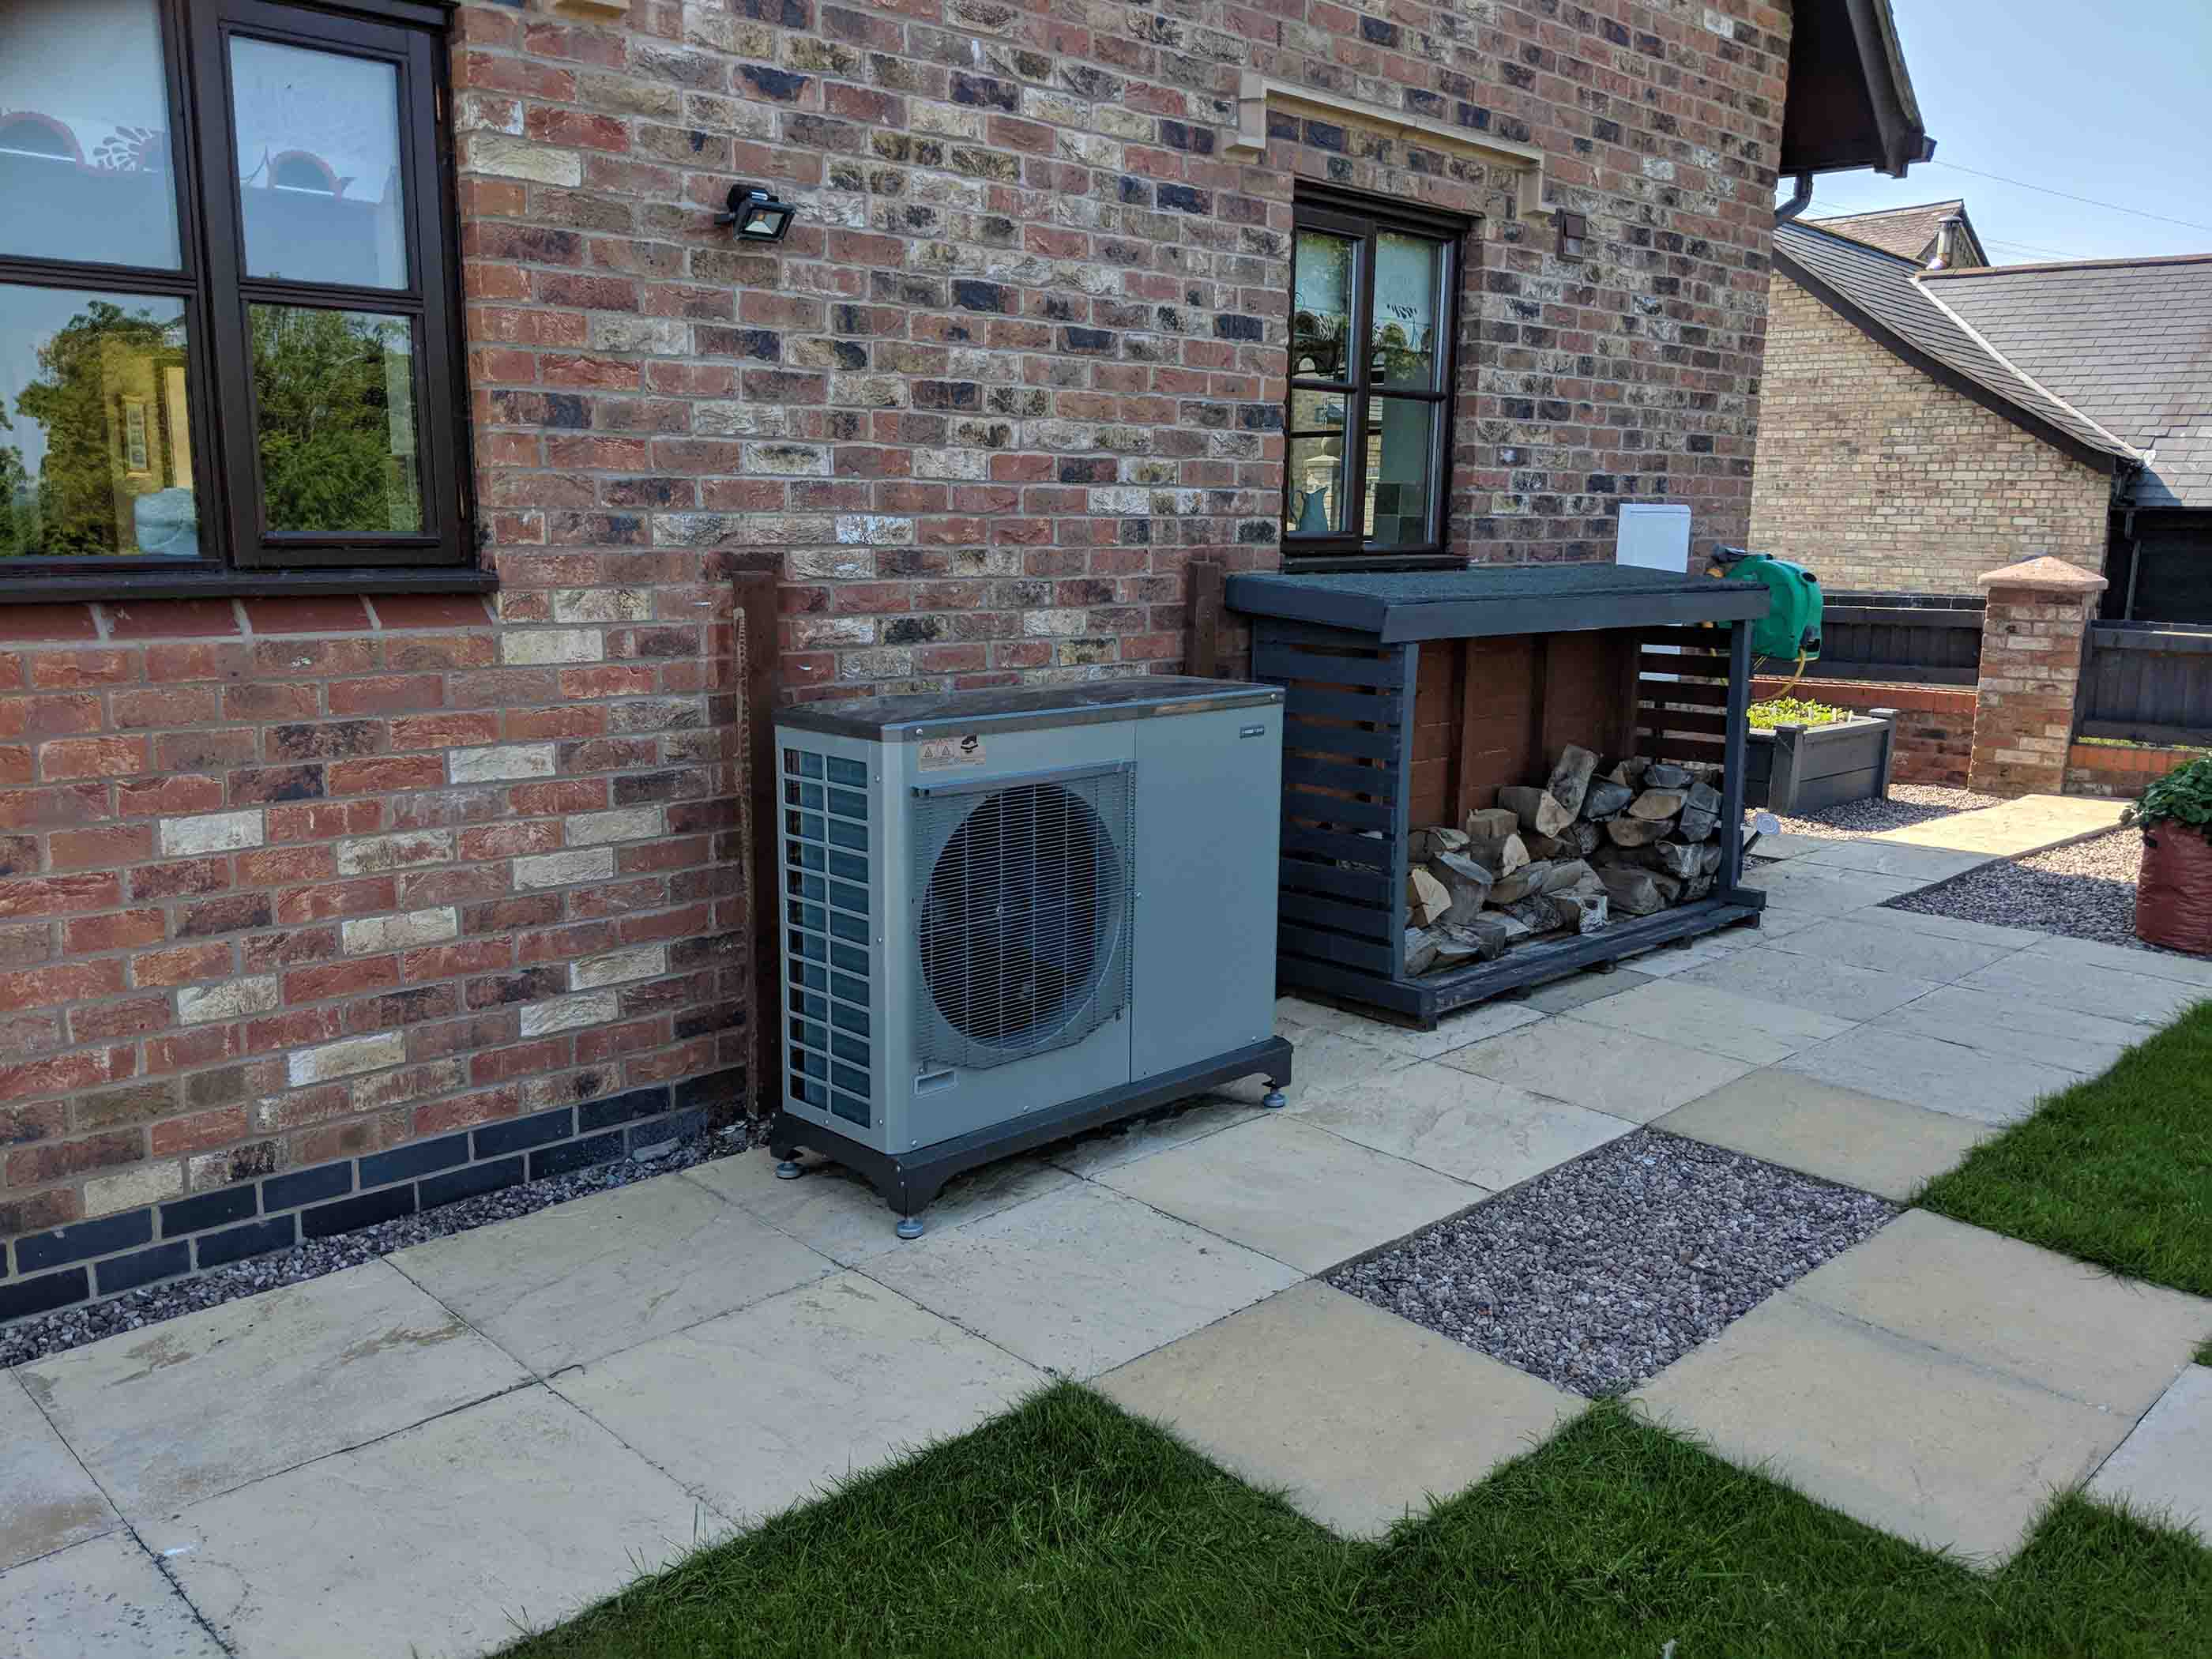 Ground-and-Air-source-heatpumps